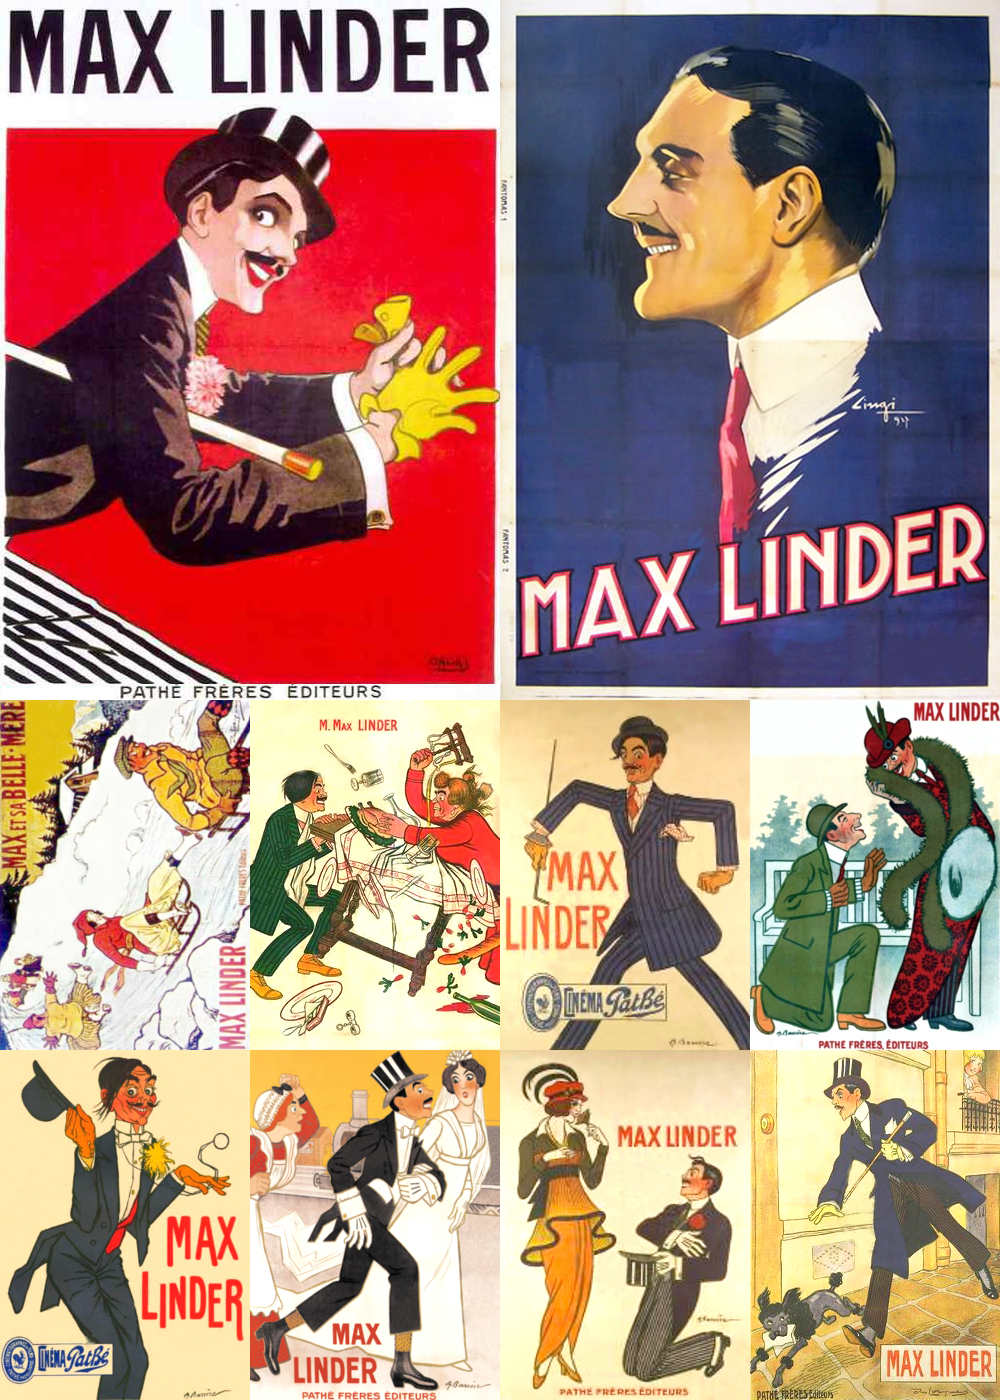 Top 10 Comedy Movies 1910-Max Linder